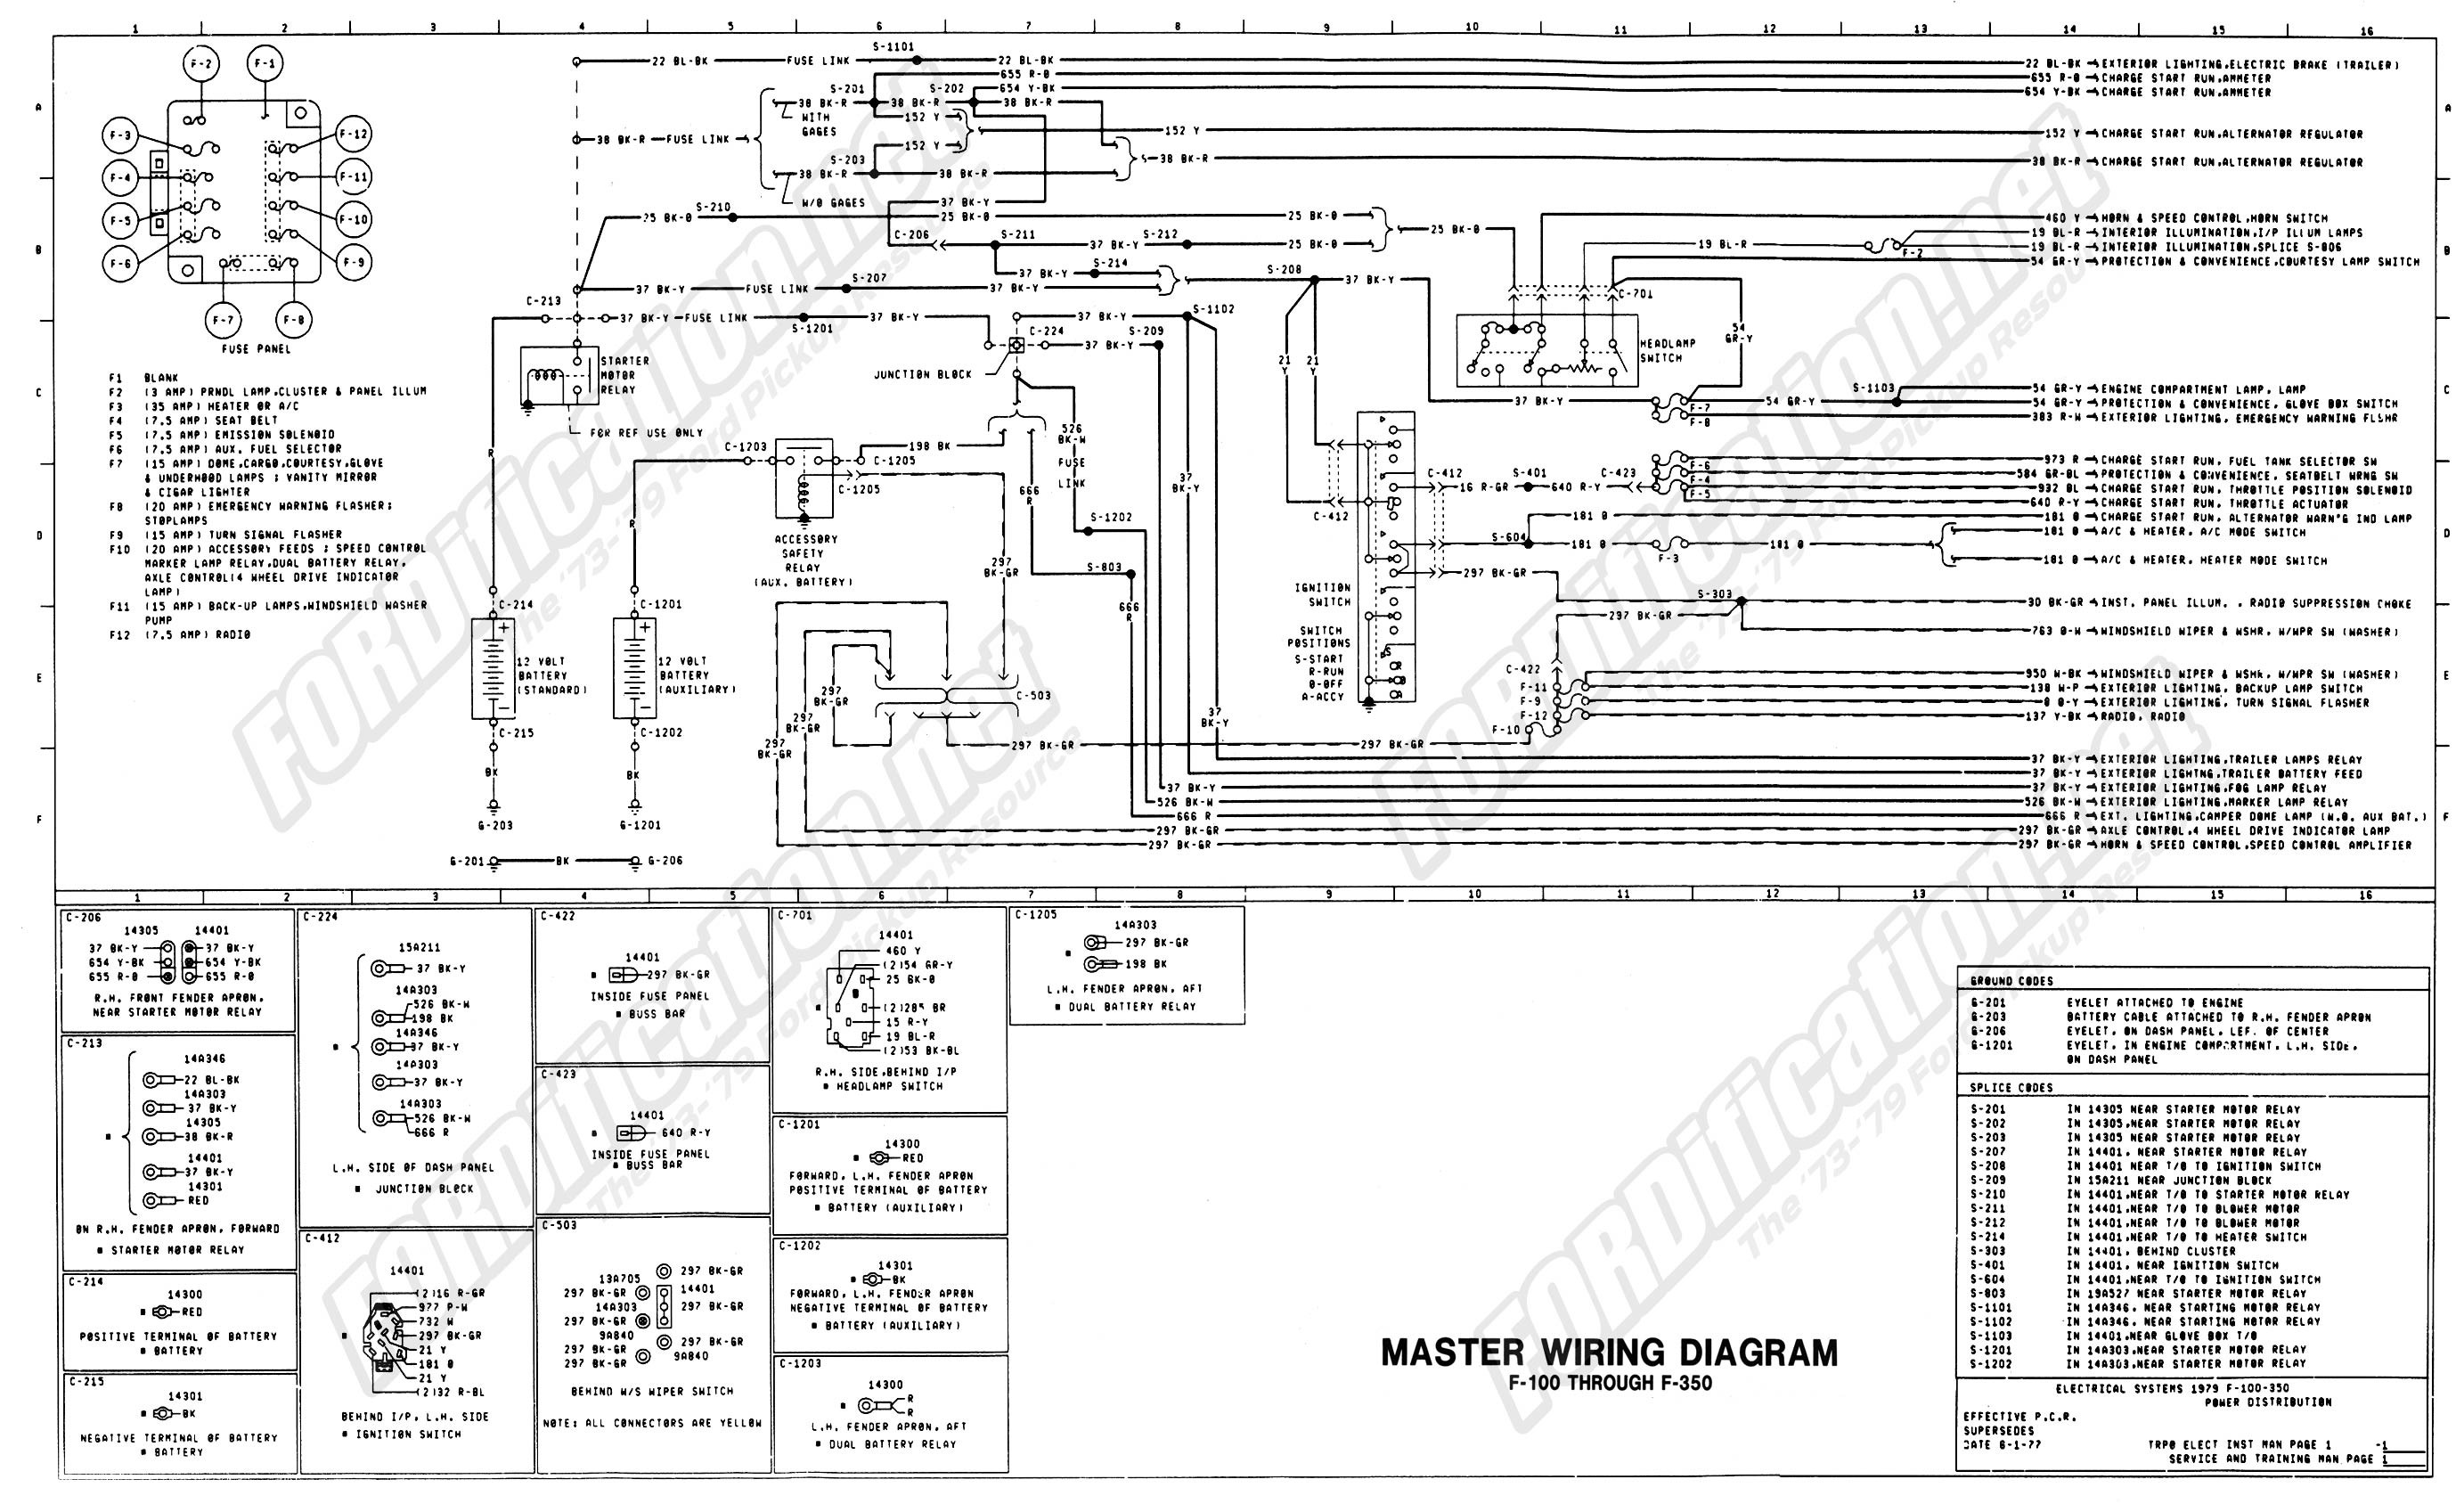 2010 ford f150 wiring diagram ford truck technical drawings and rh detoxicrecenze com